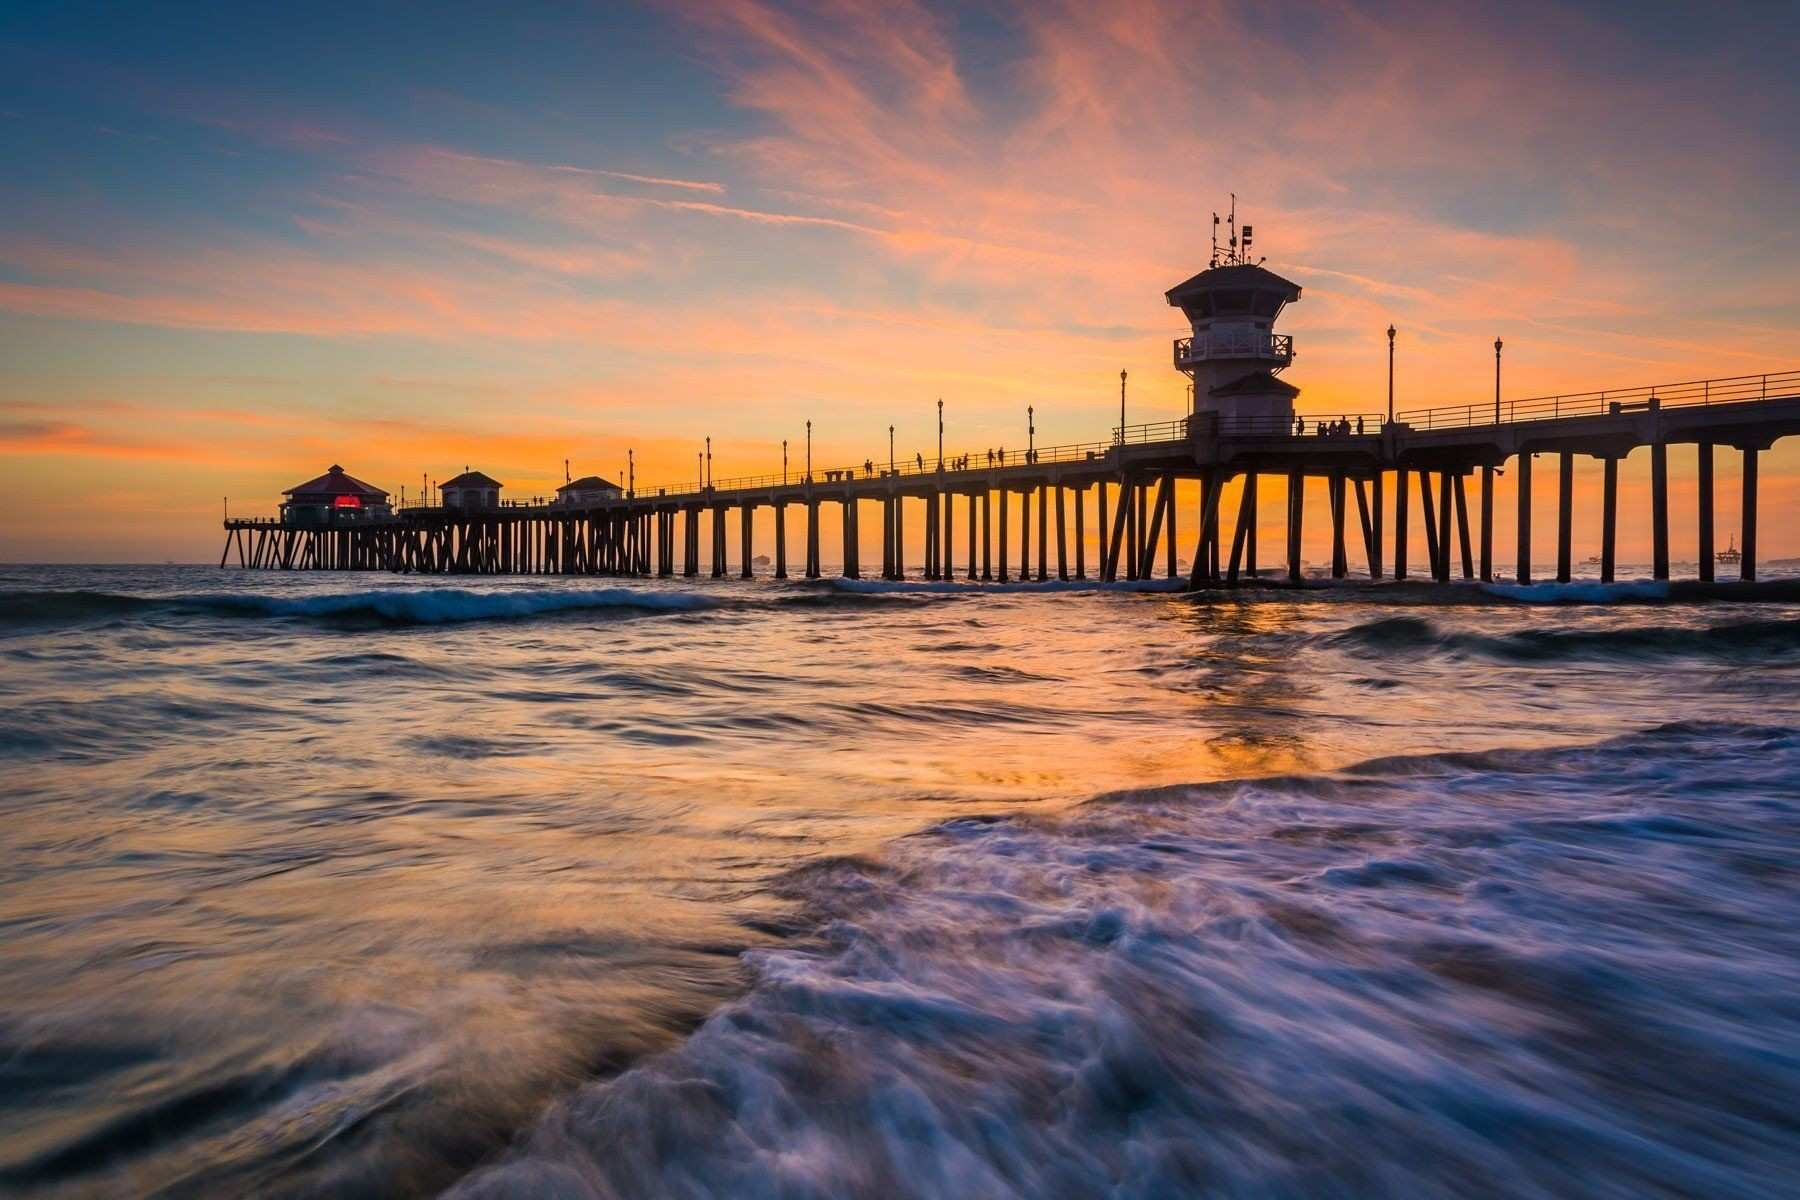 Waves in the Pacific Ocean and the pier at sunset in Huntington